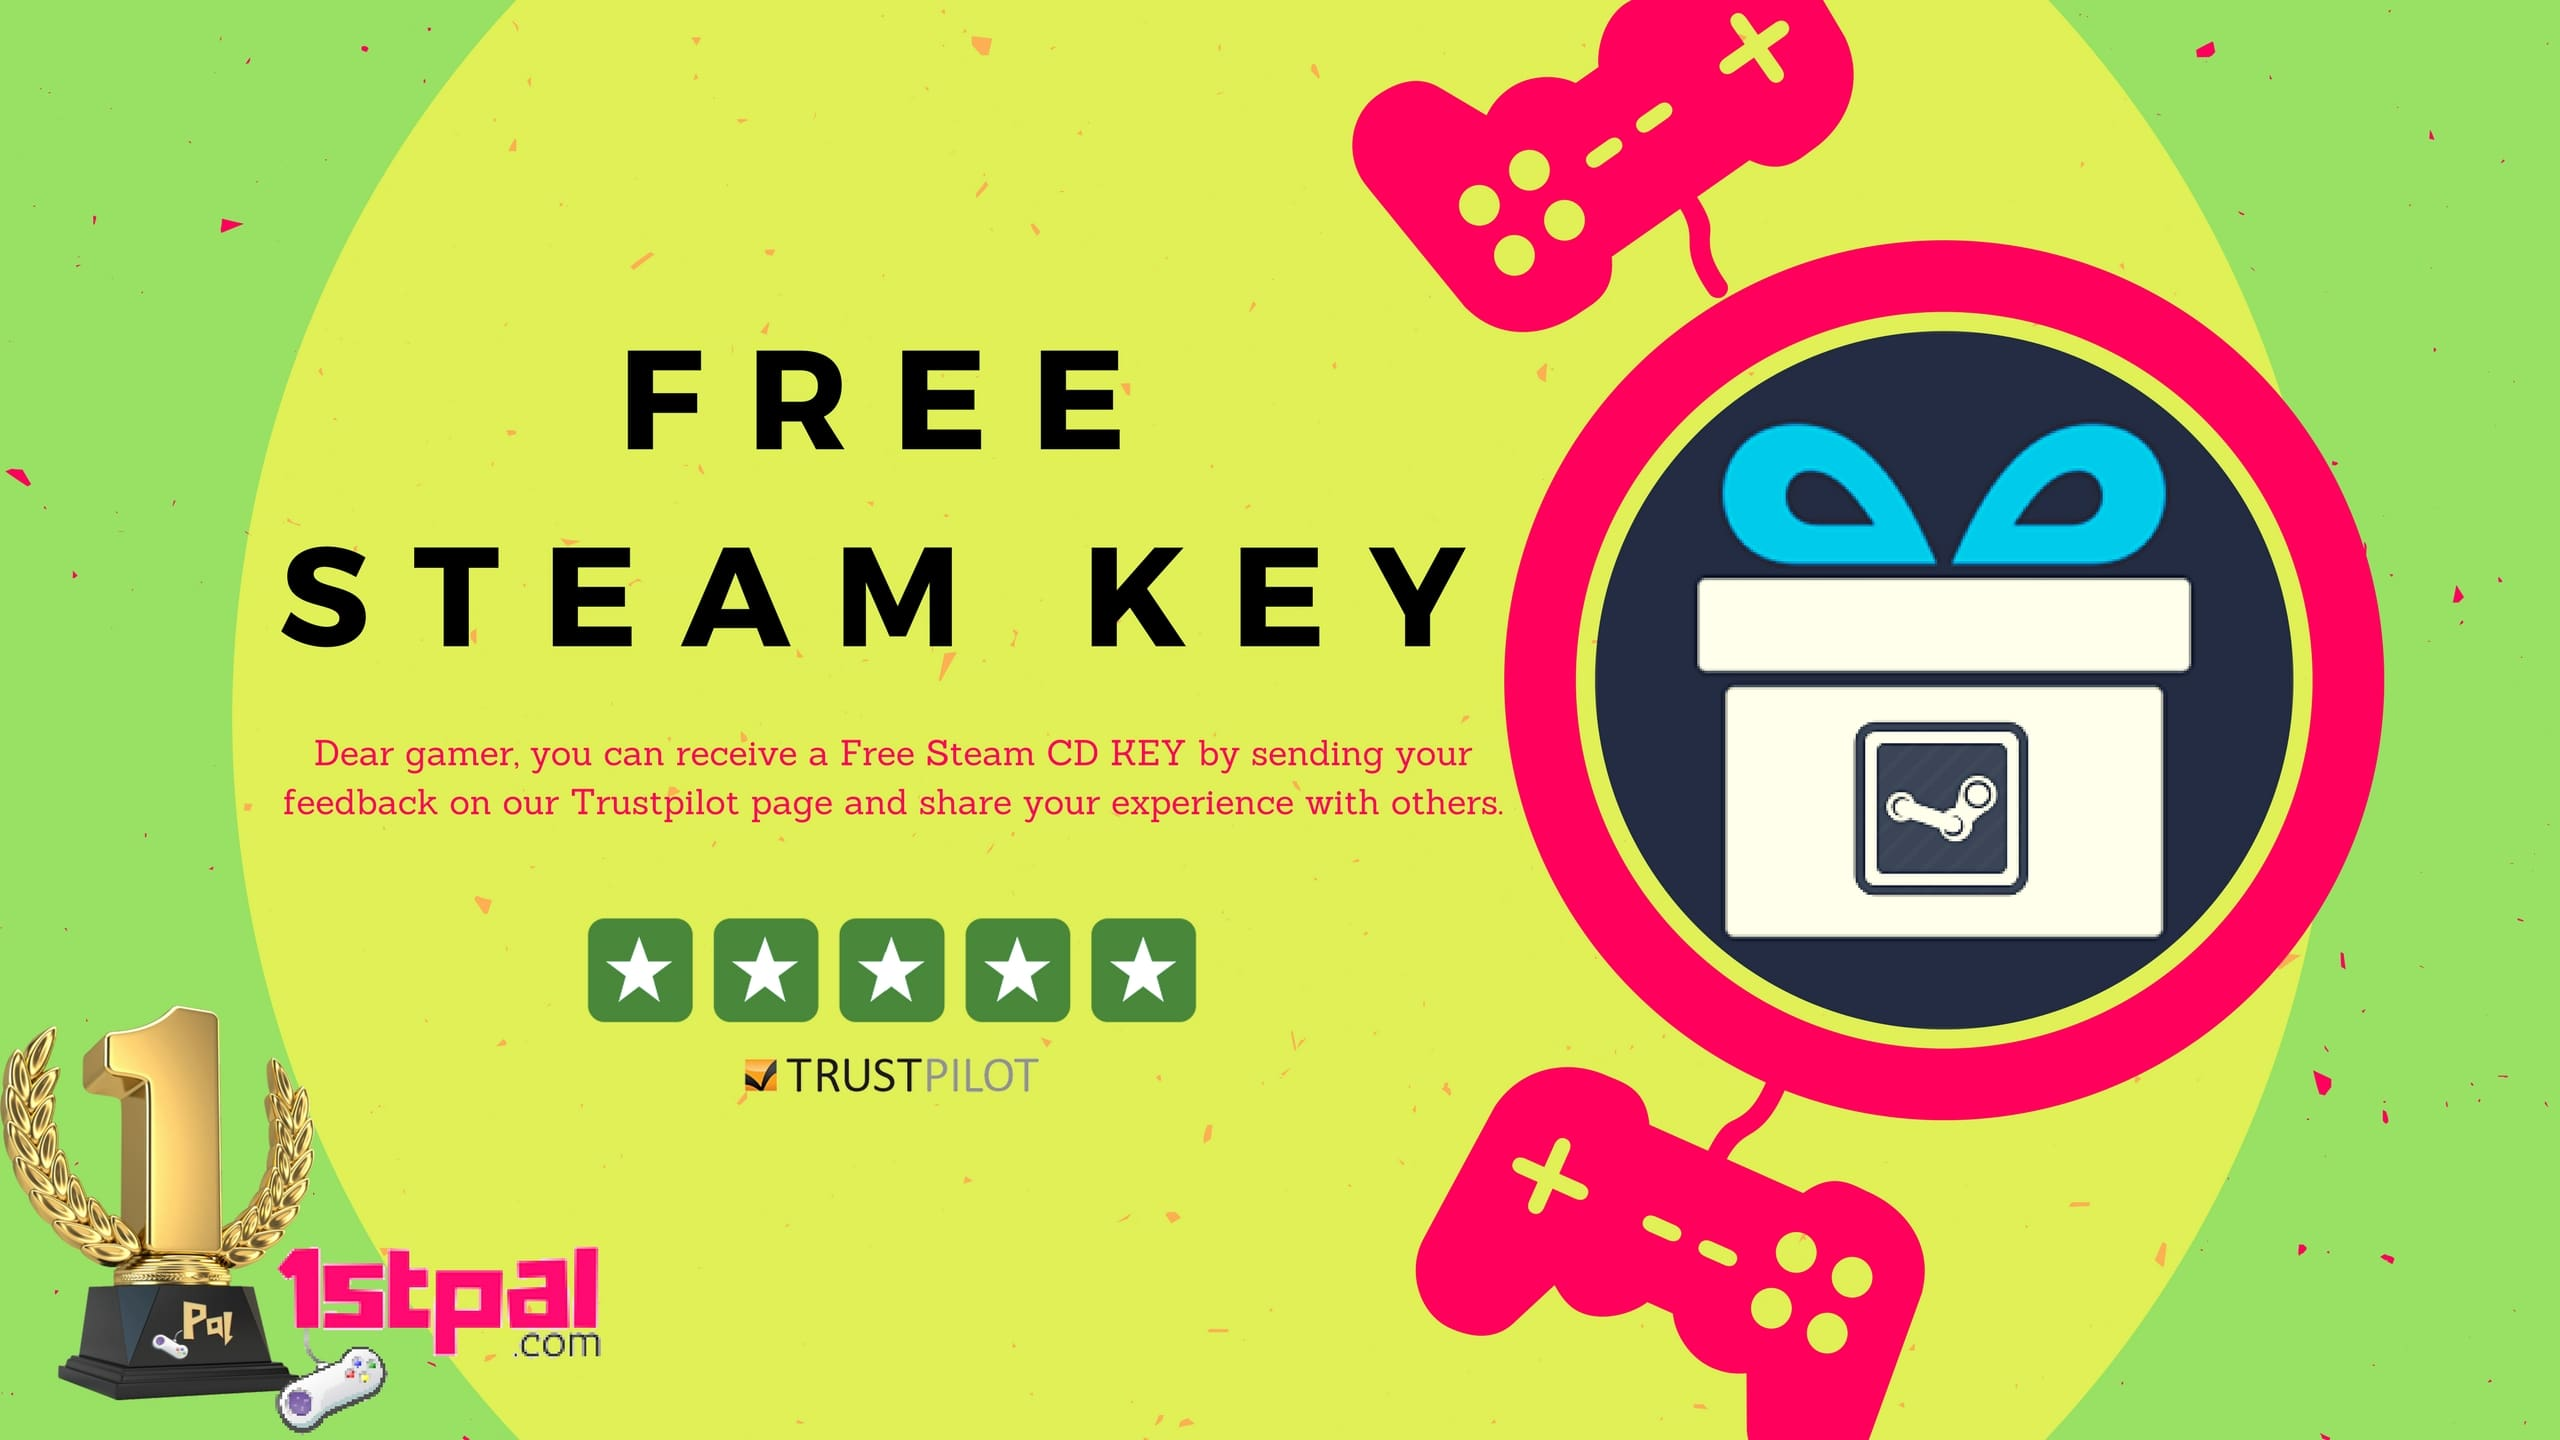 Trustpilot-Free-Steam-Key-1stpal